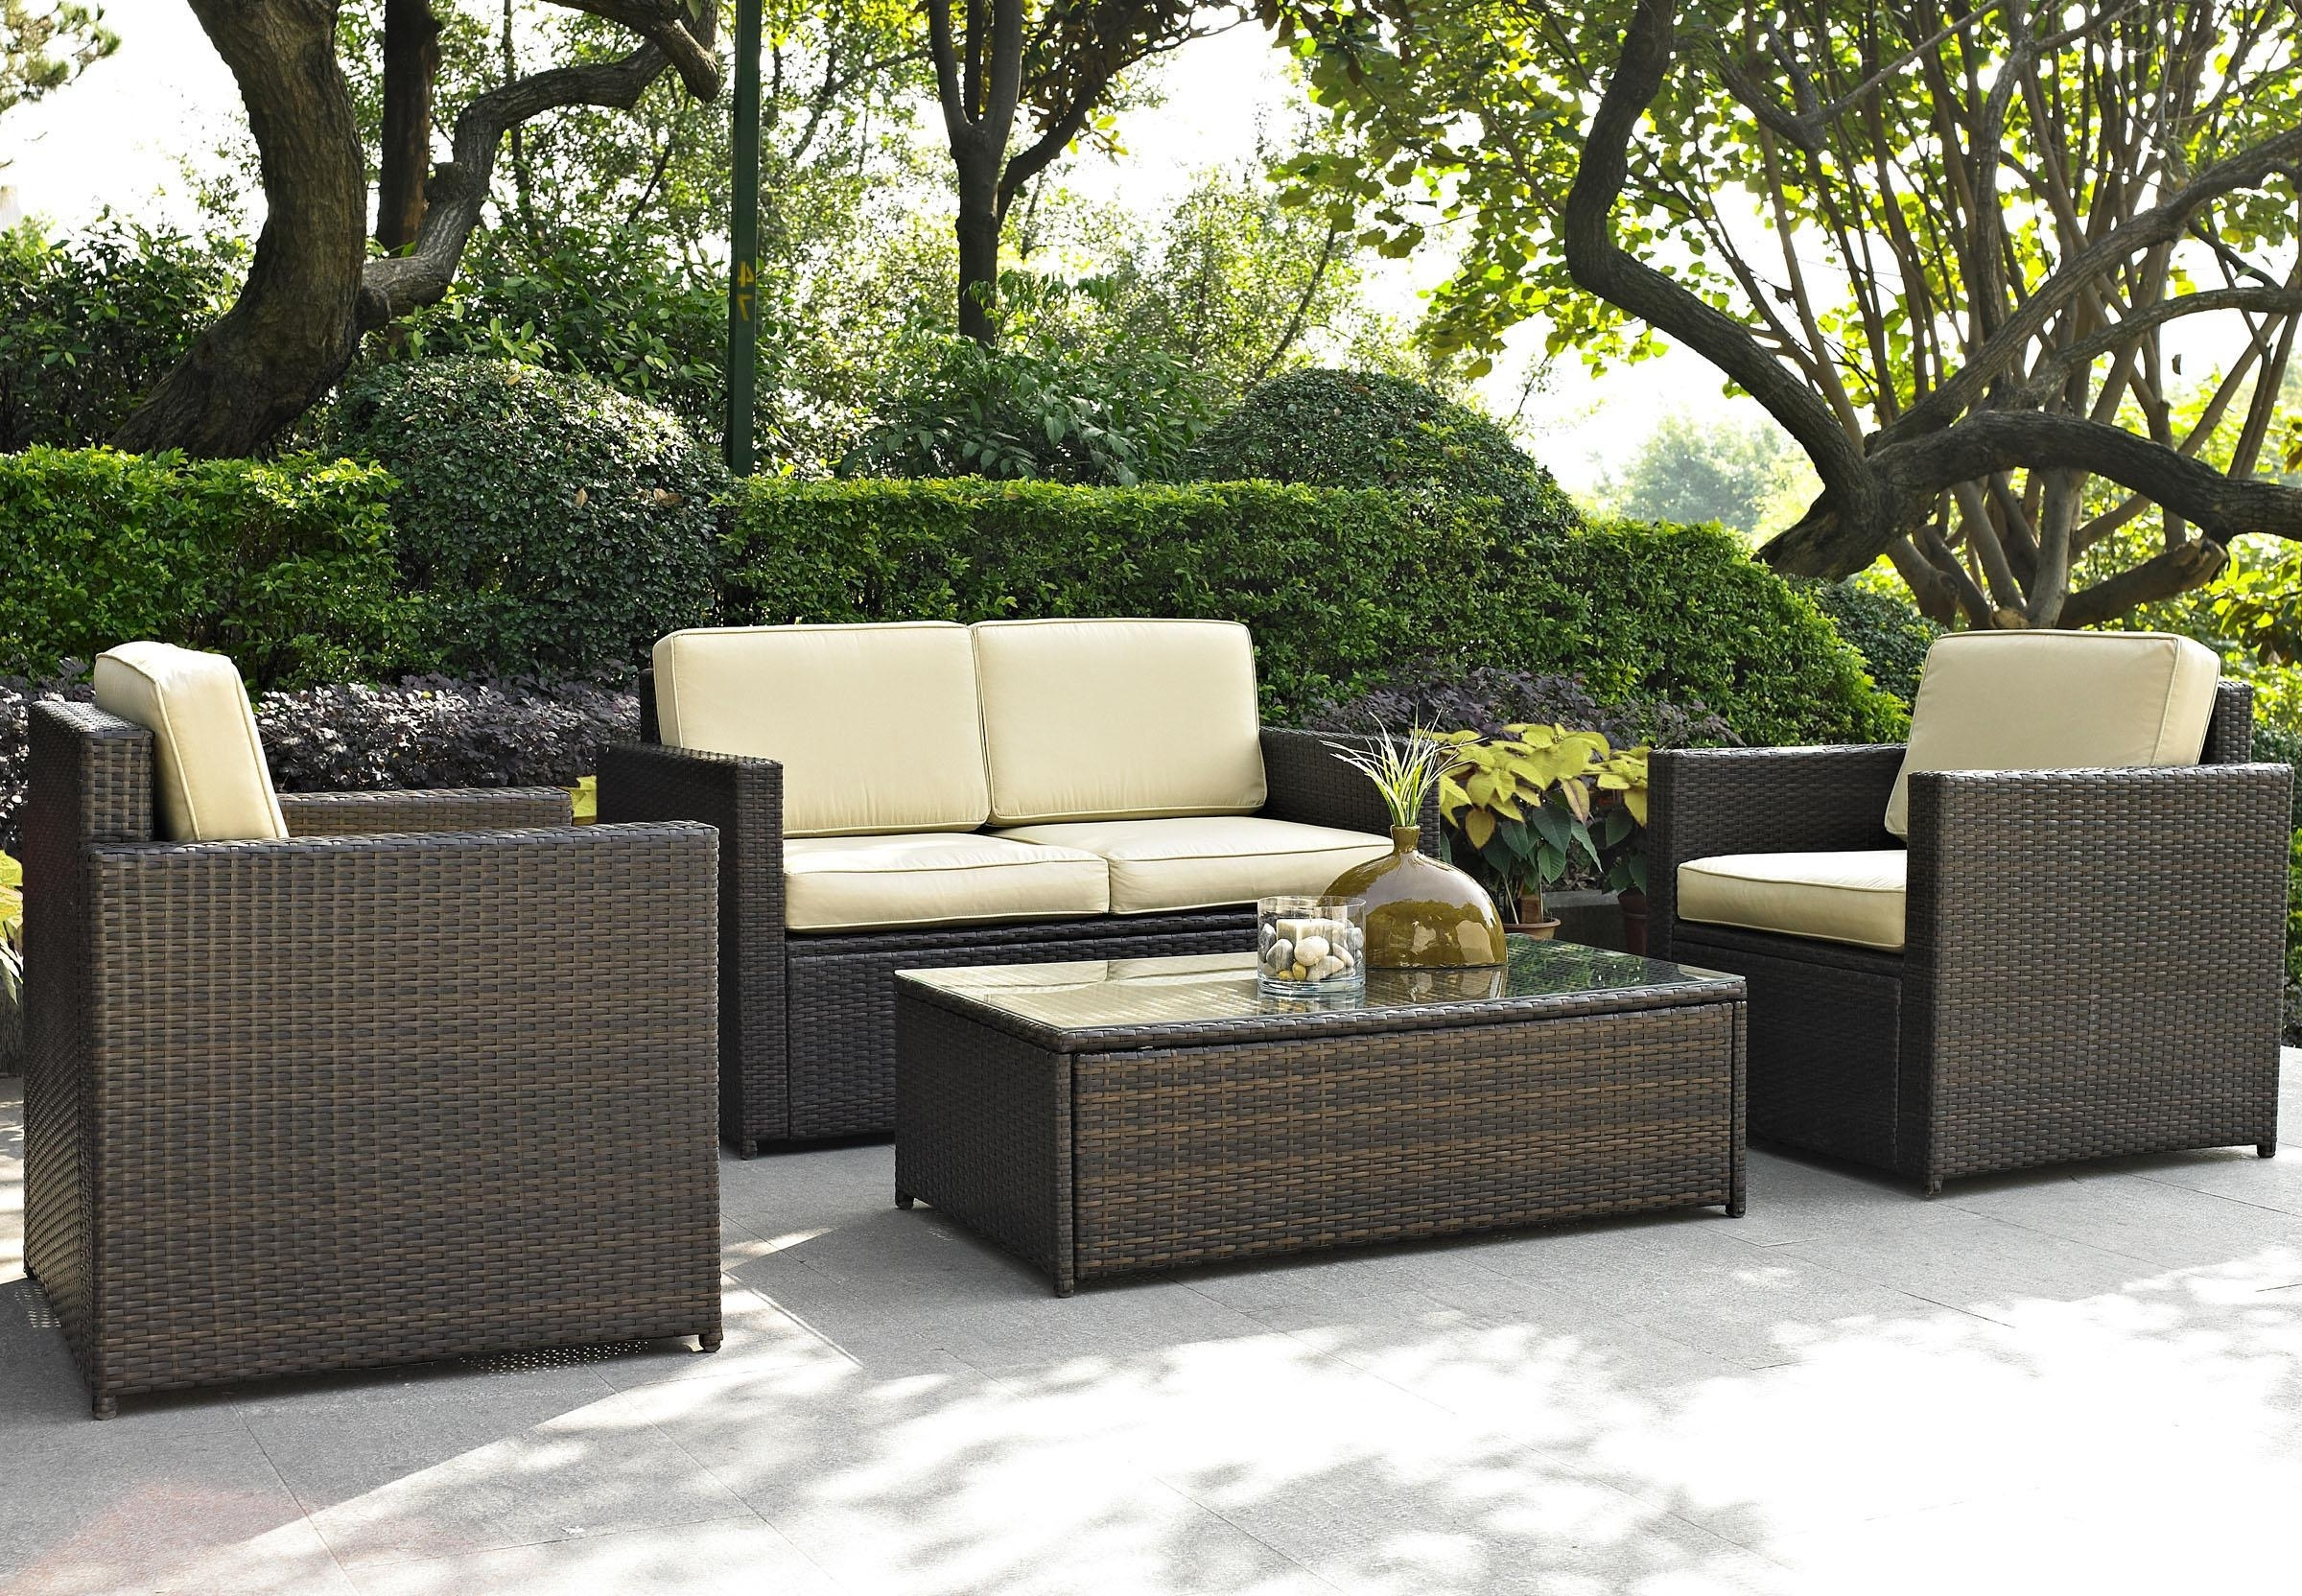 Patio Conversation Sets At Walmart For Favorite Furniture: Lovely Brown Wicker Chair Outdoor Furniture Design (View 12 of 20)